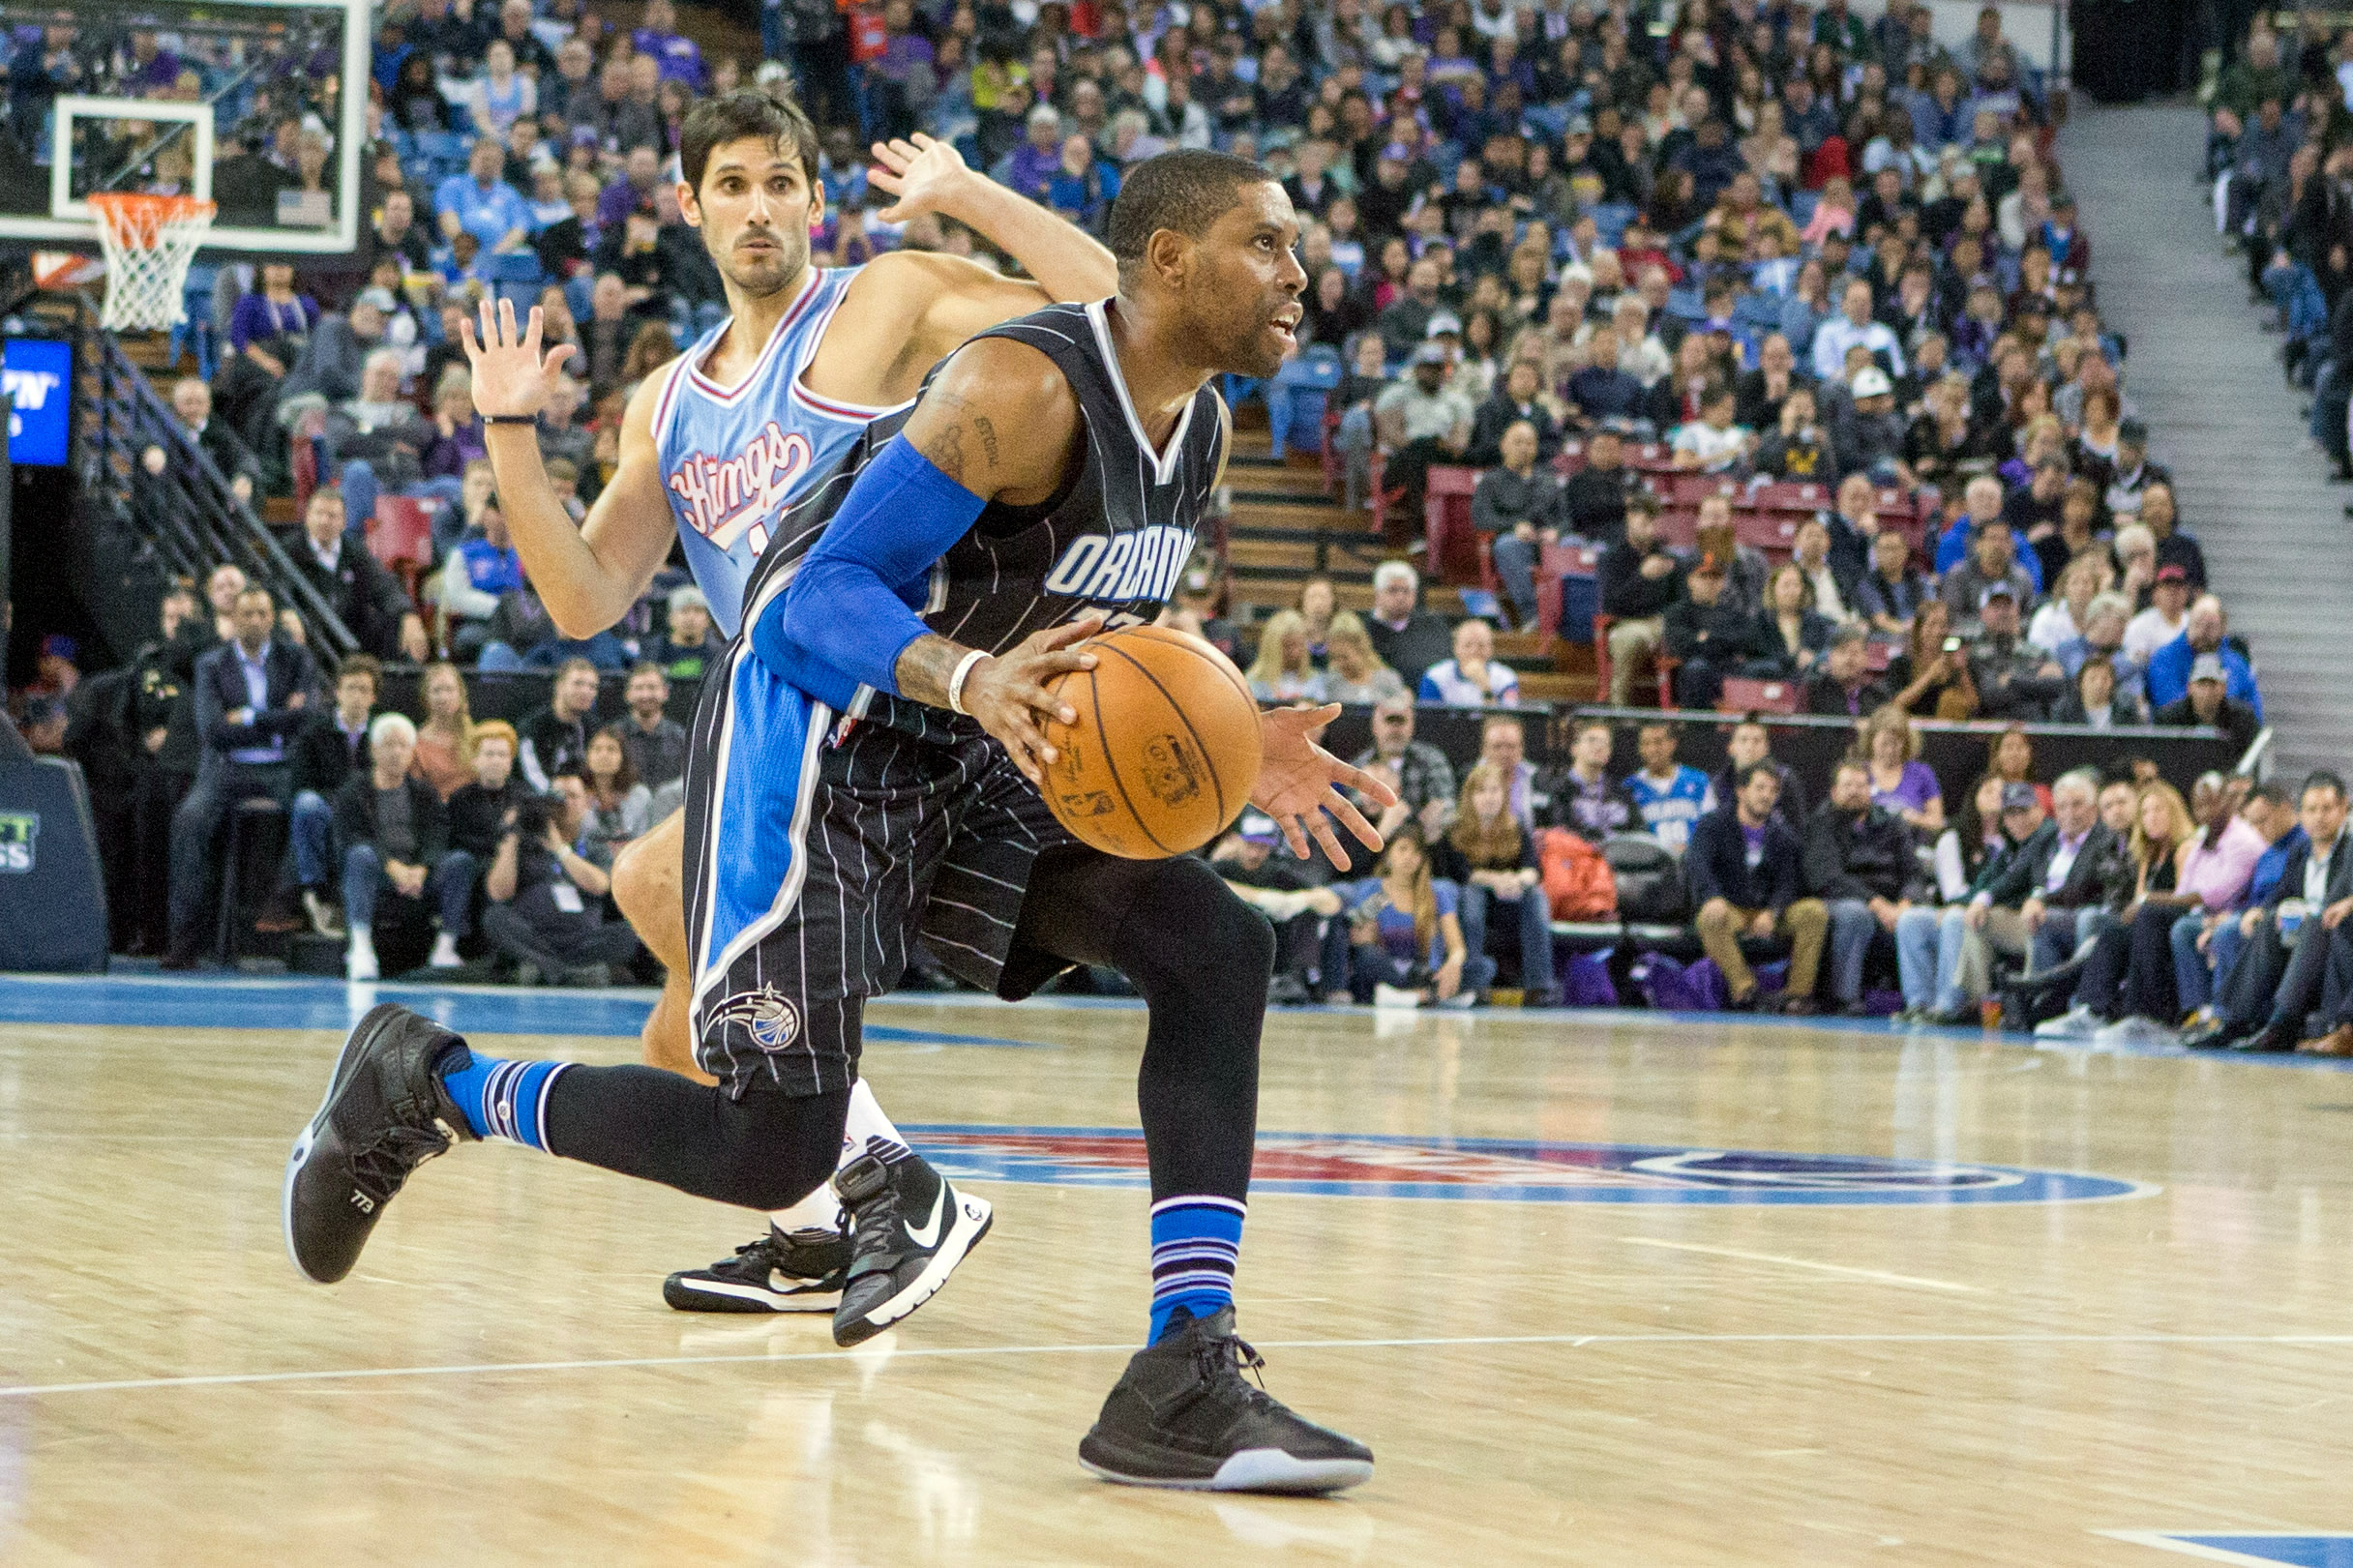 Even without Elfrid Payton and Nikola Vucevic, the Magic were able to blow past the short-handed Kings on offense Friday.